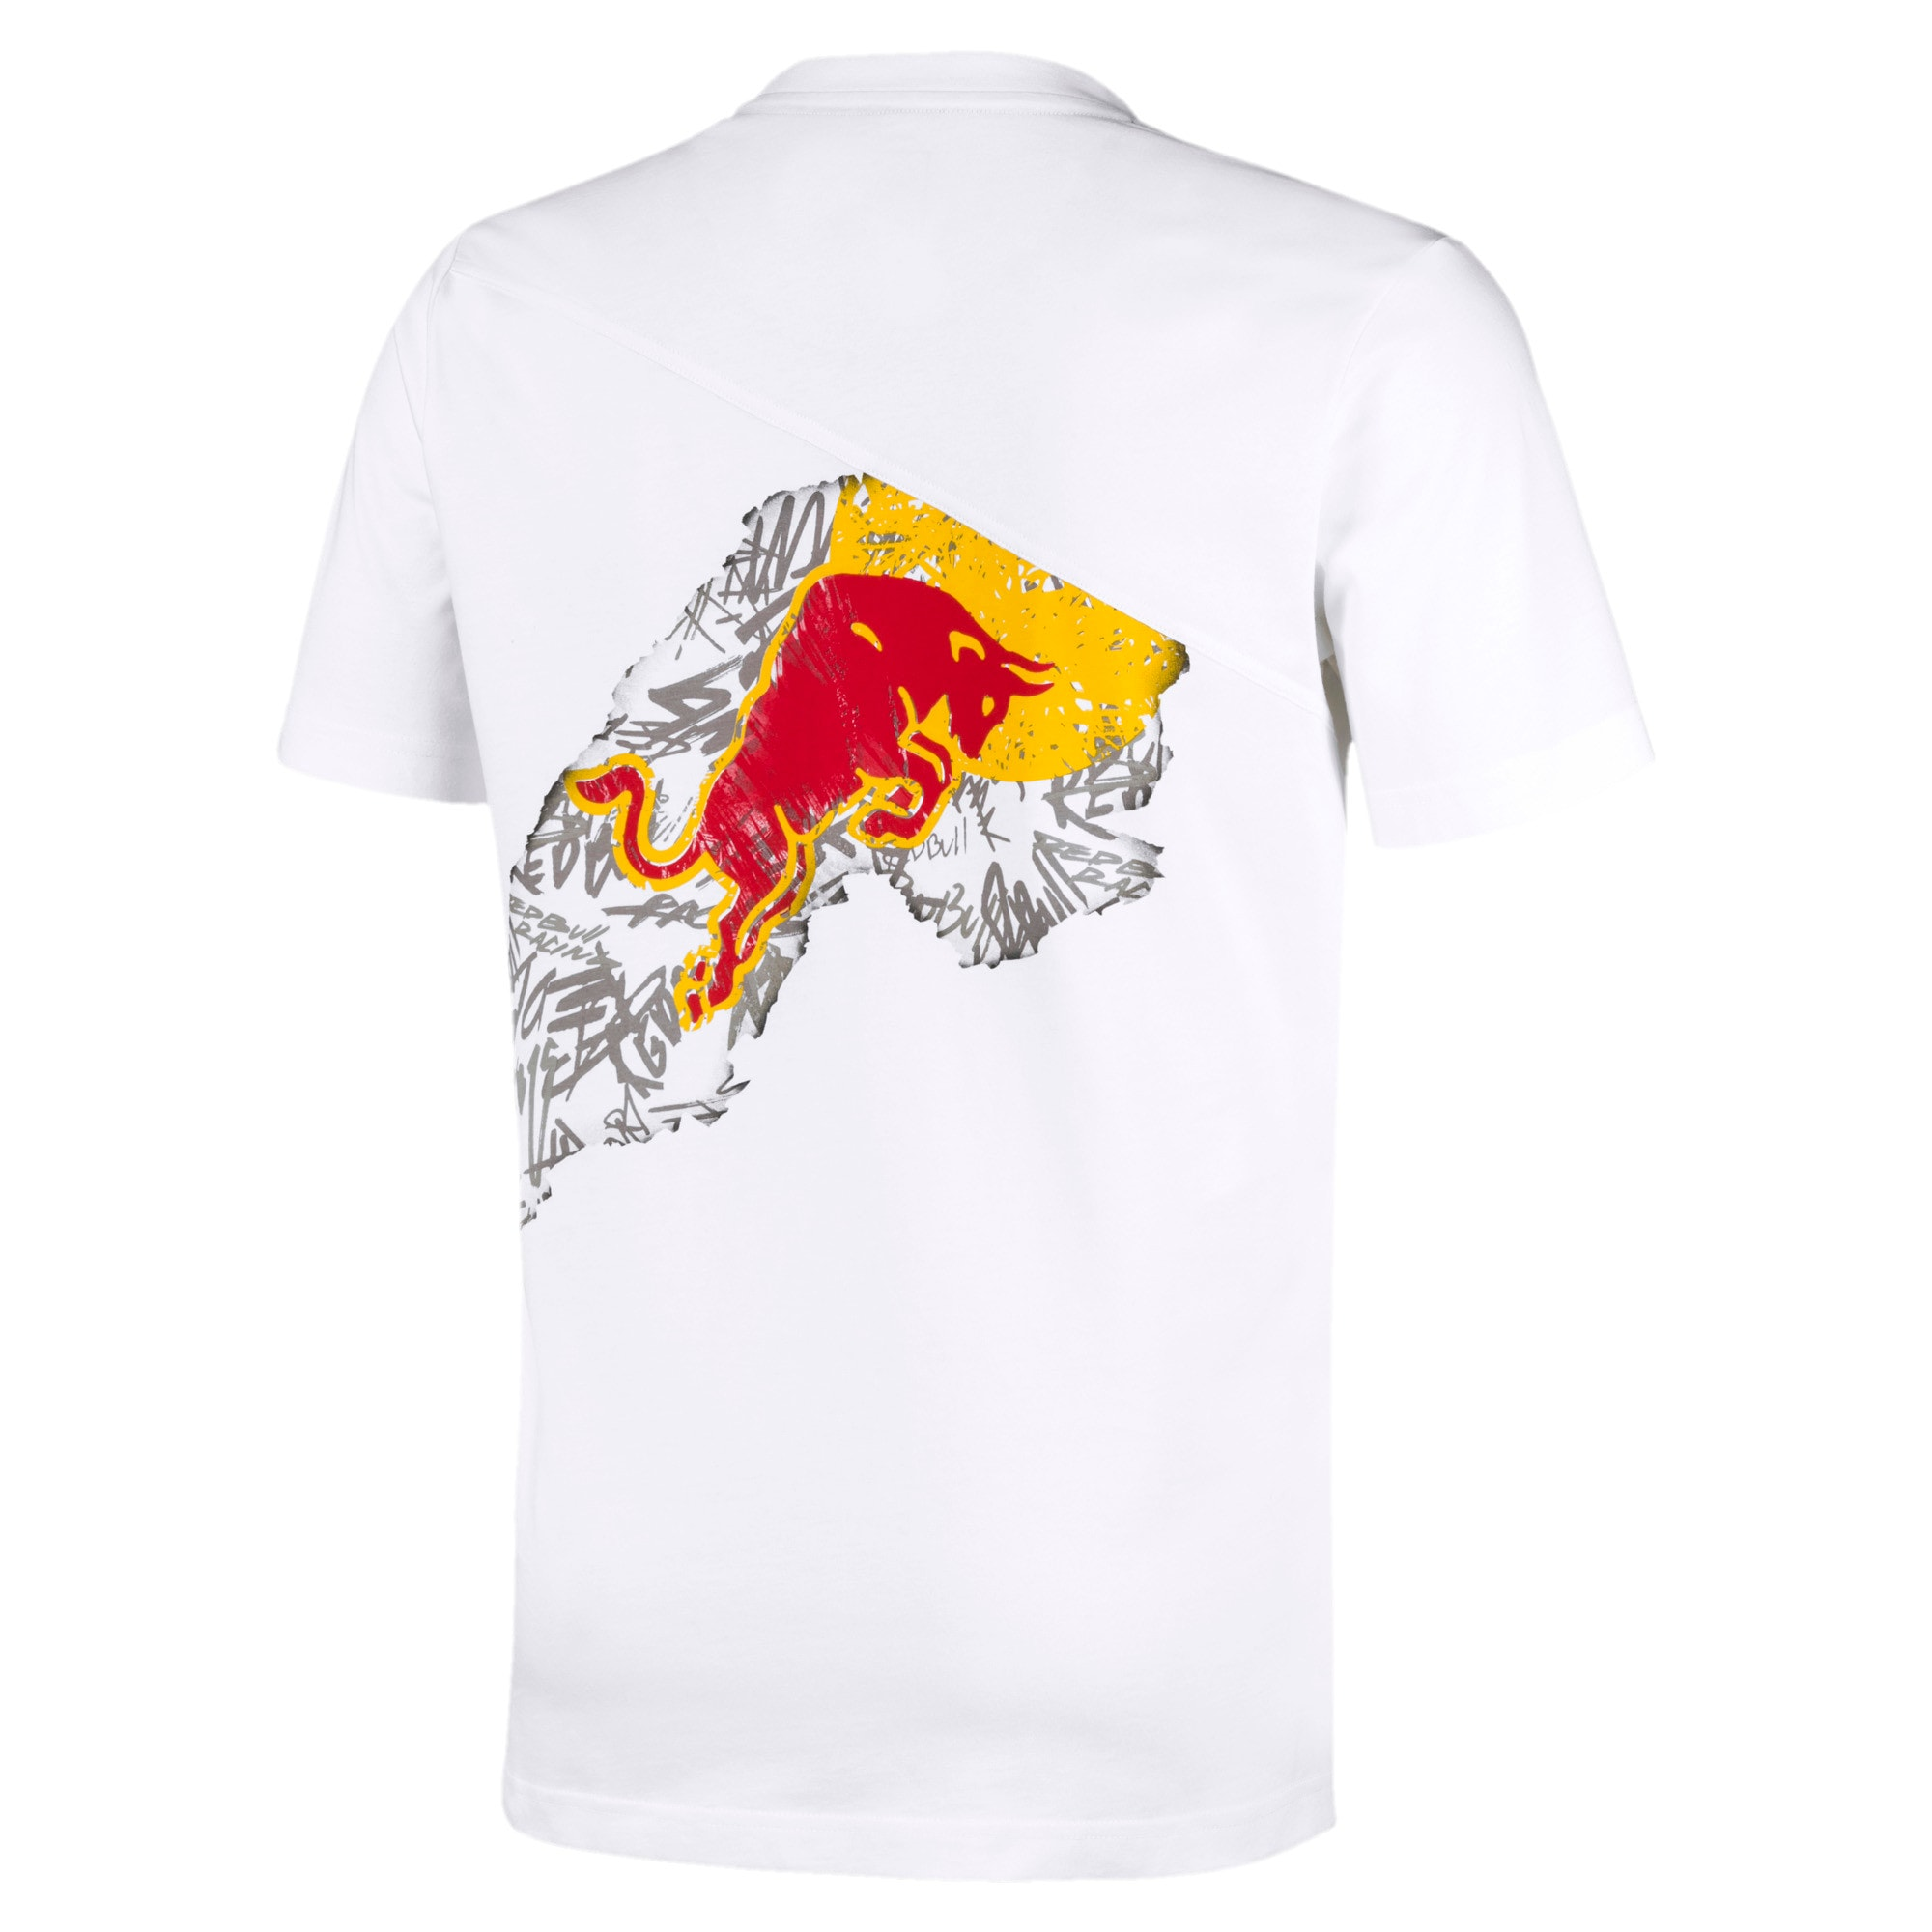 Thumbnail 2 of Red Bull Racing Dynamic Bull Men's Tee, Puma White, medium